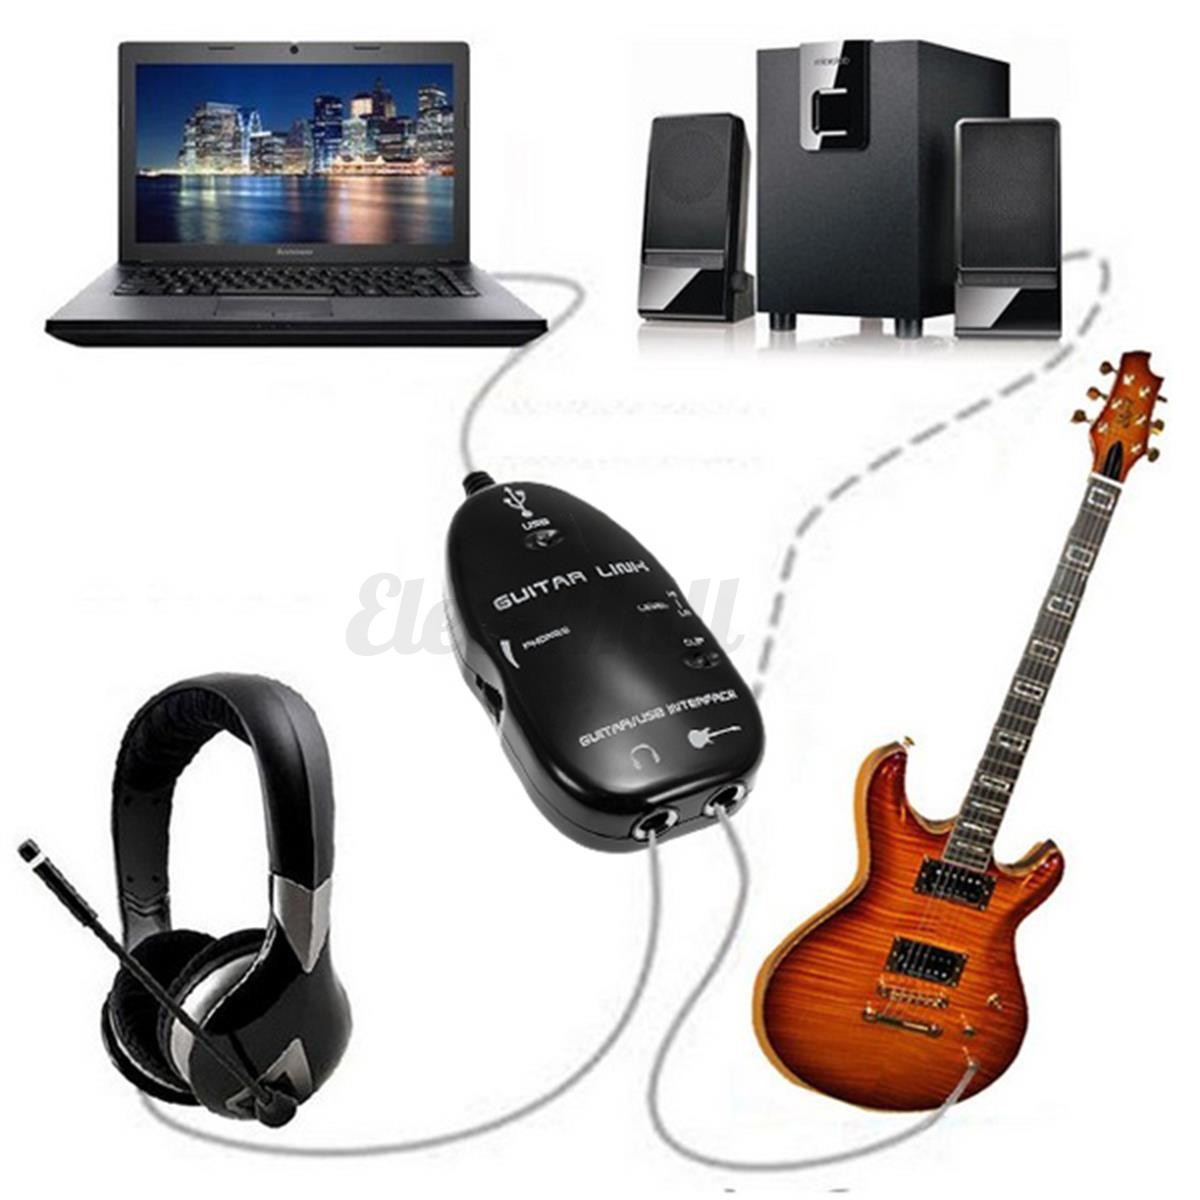 usb to electric guitar interface link audio cable music recording amp adapter cd ebay. Black Bedroom Furniture Sets. Home Design Ideas